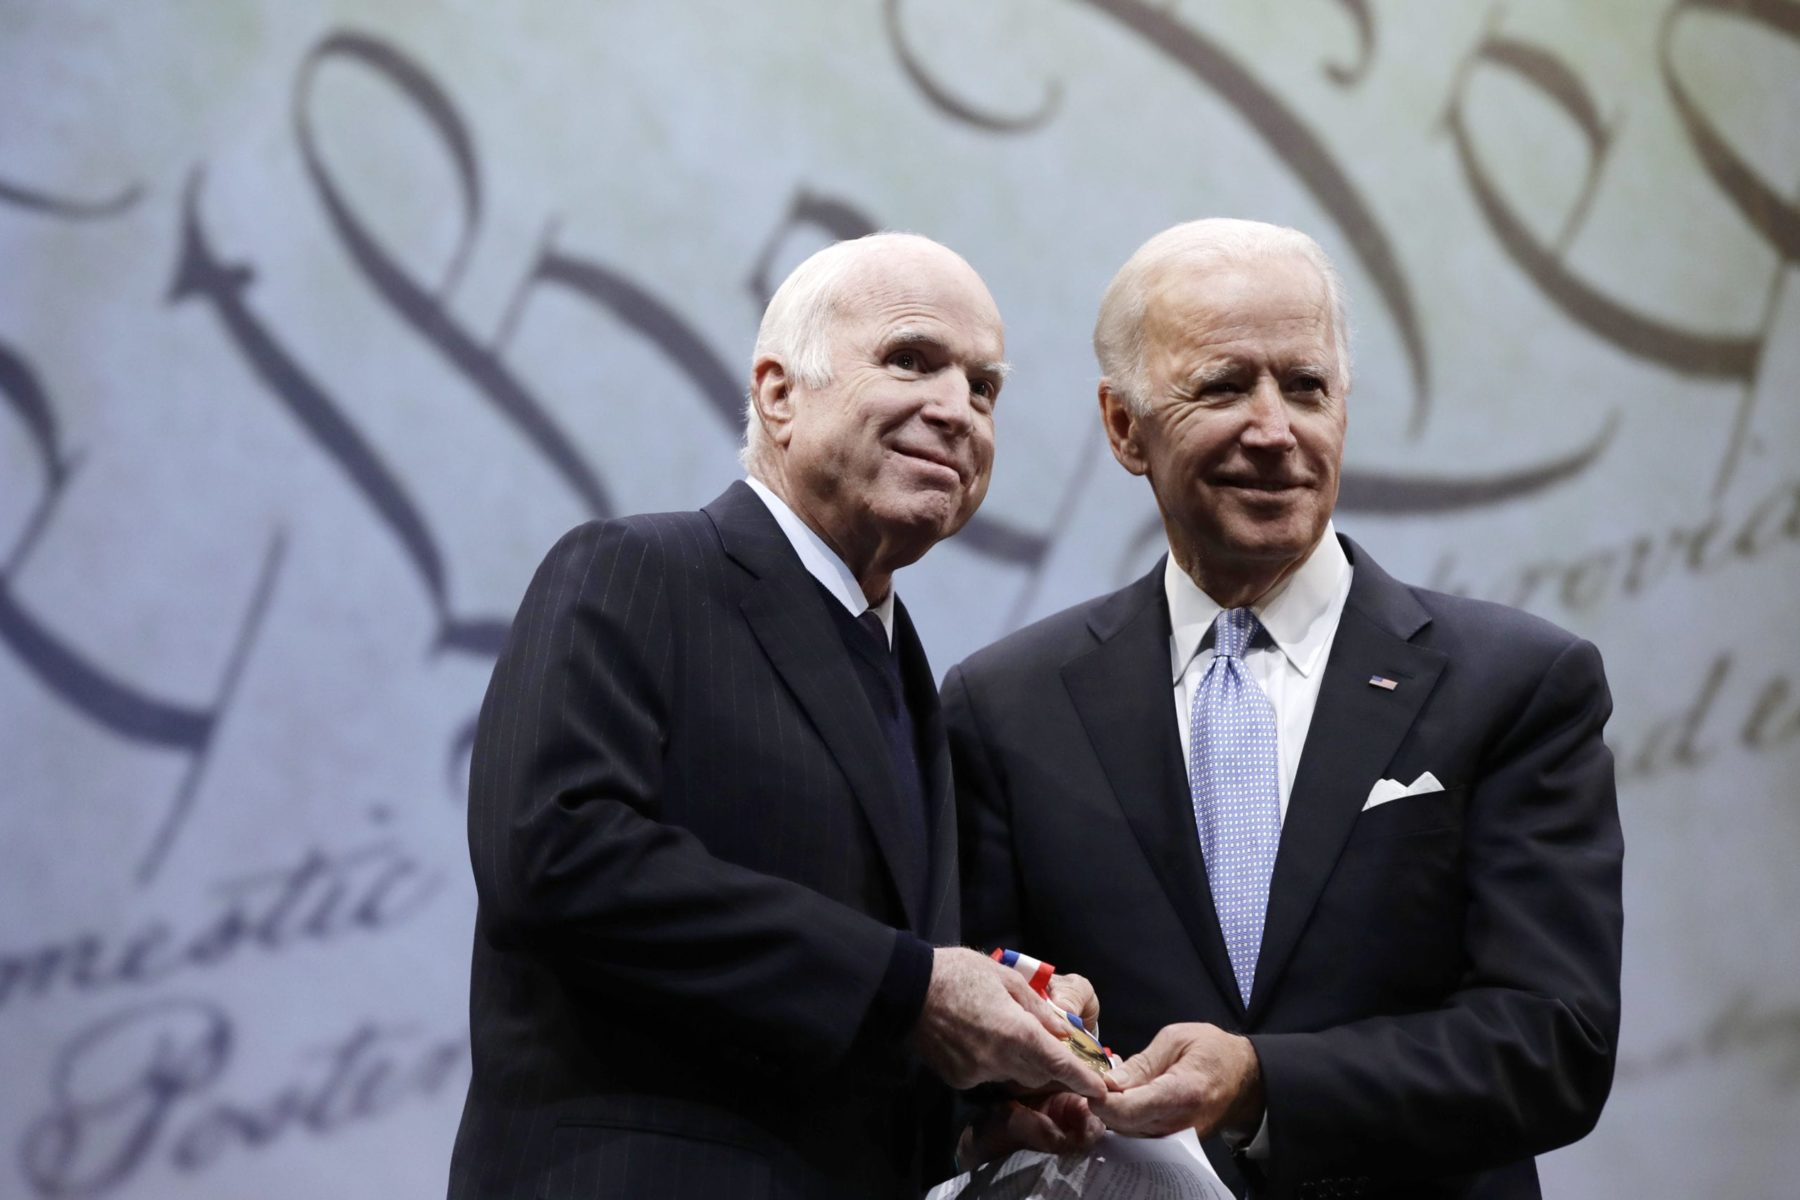 Sen. John McCain and Joe Biden together on stage.